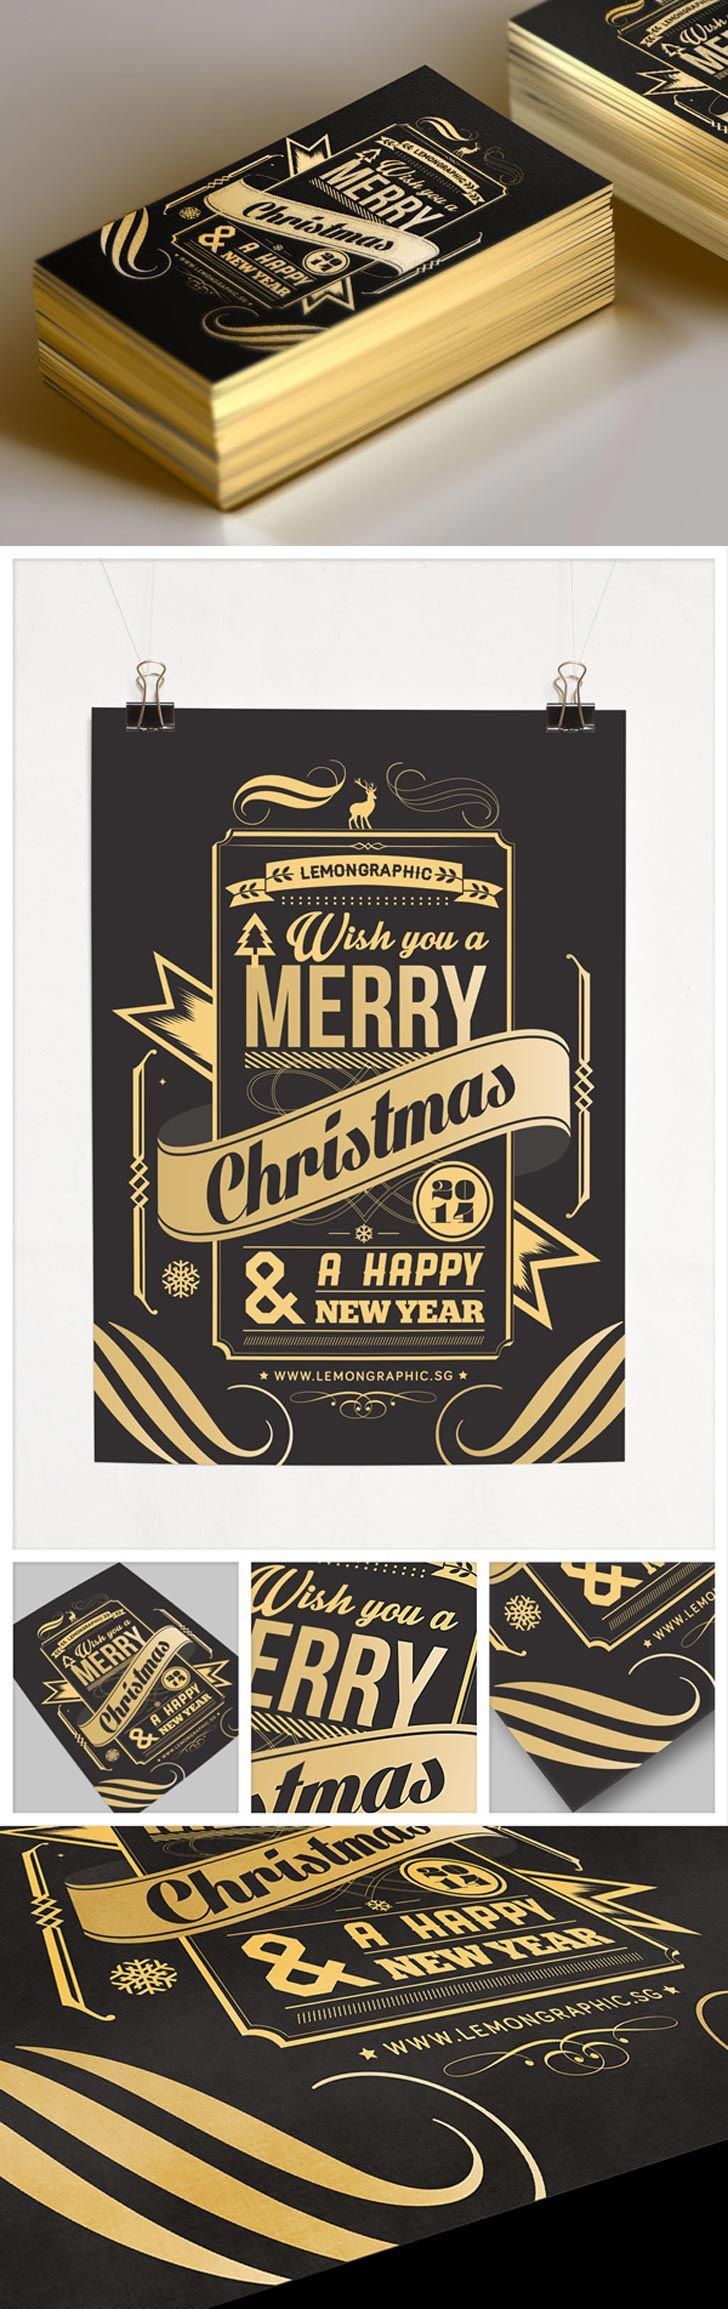 Stunning Christmas Card Gold Stamp Typography: I think this card is a pretty neat design. It was created by the talented creatives at LemonGraphic with Rayz Ong. The design is a gold-foil stamp print on thick black card with a professional gold edging.